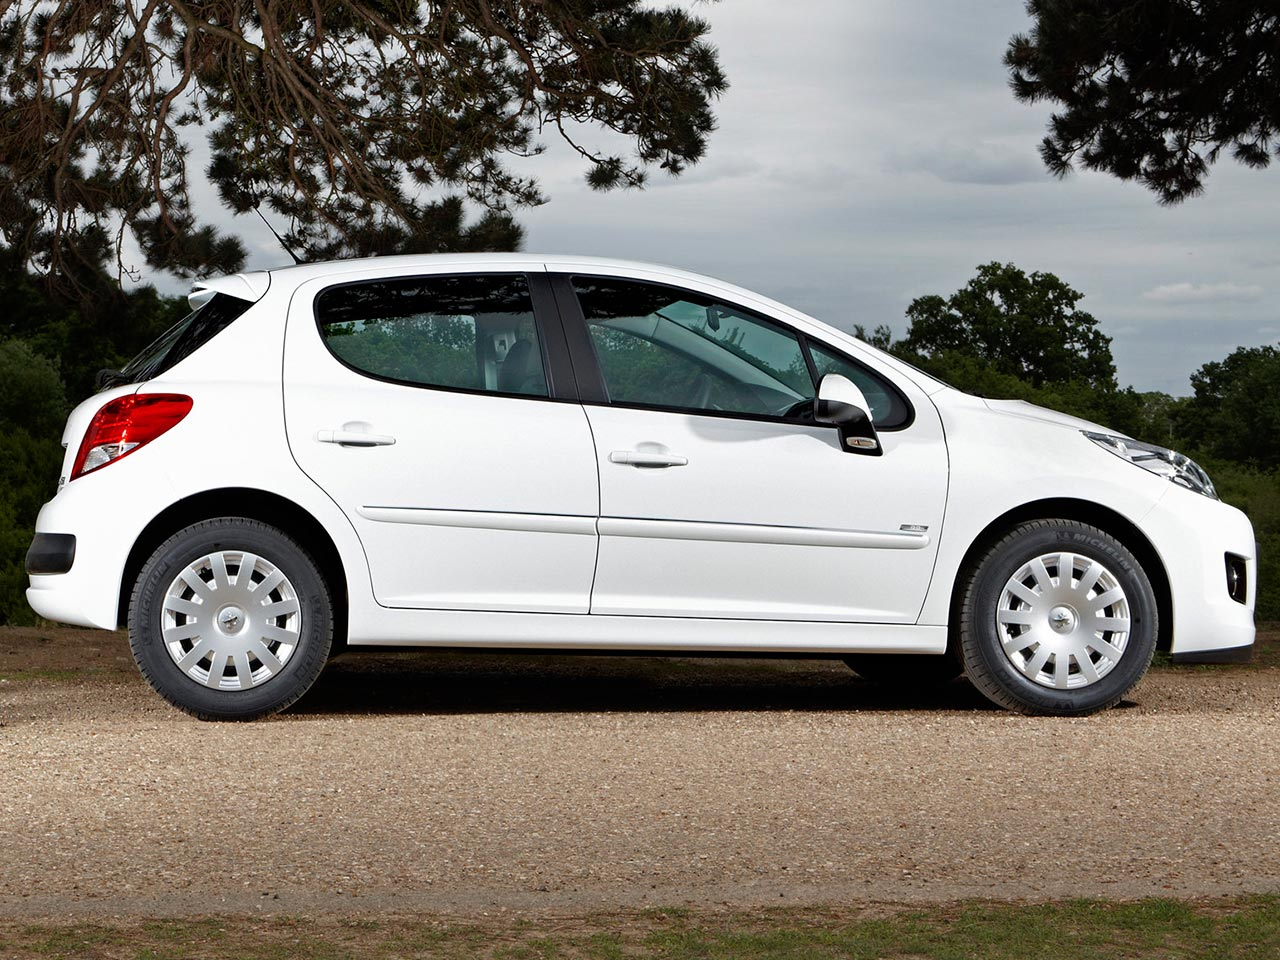 Lateral Peugeot 207